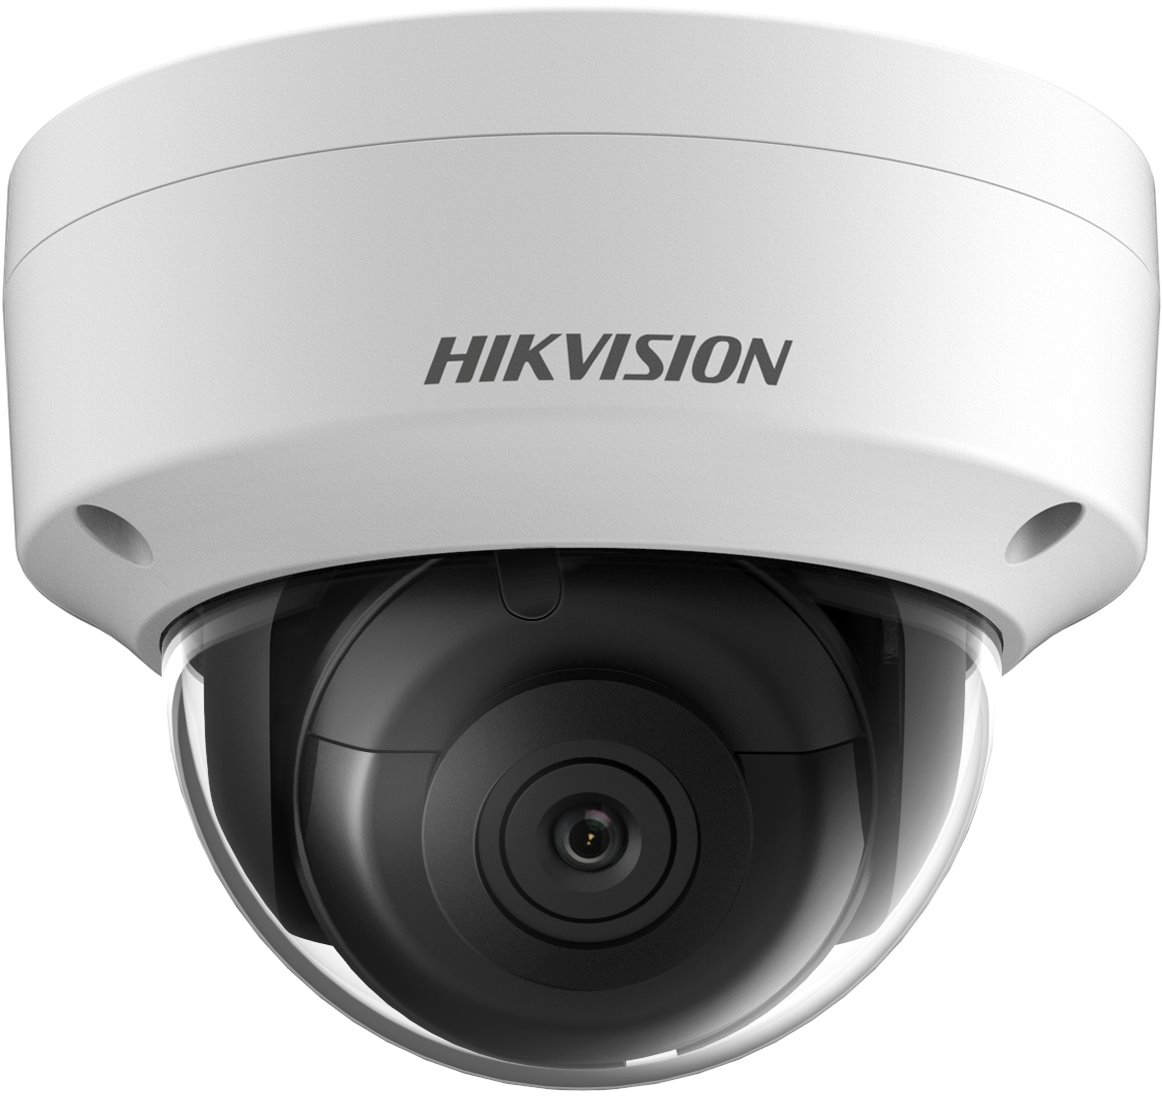 Hikvision IP dome camera - DS-2CD2143G0-I(6mm), 4MP